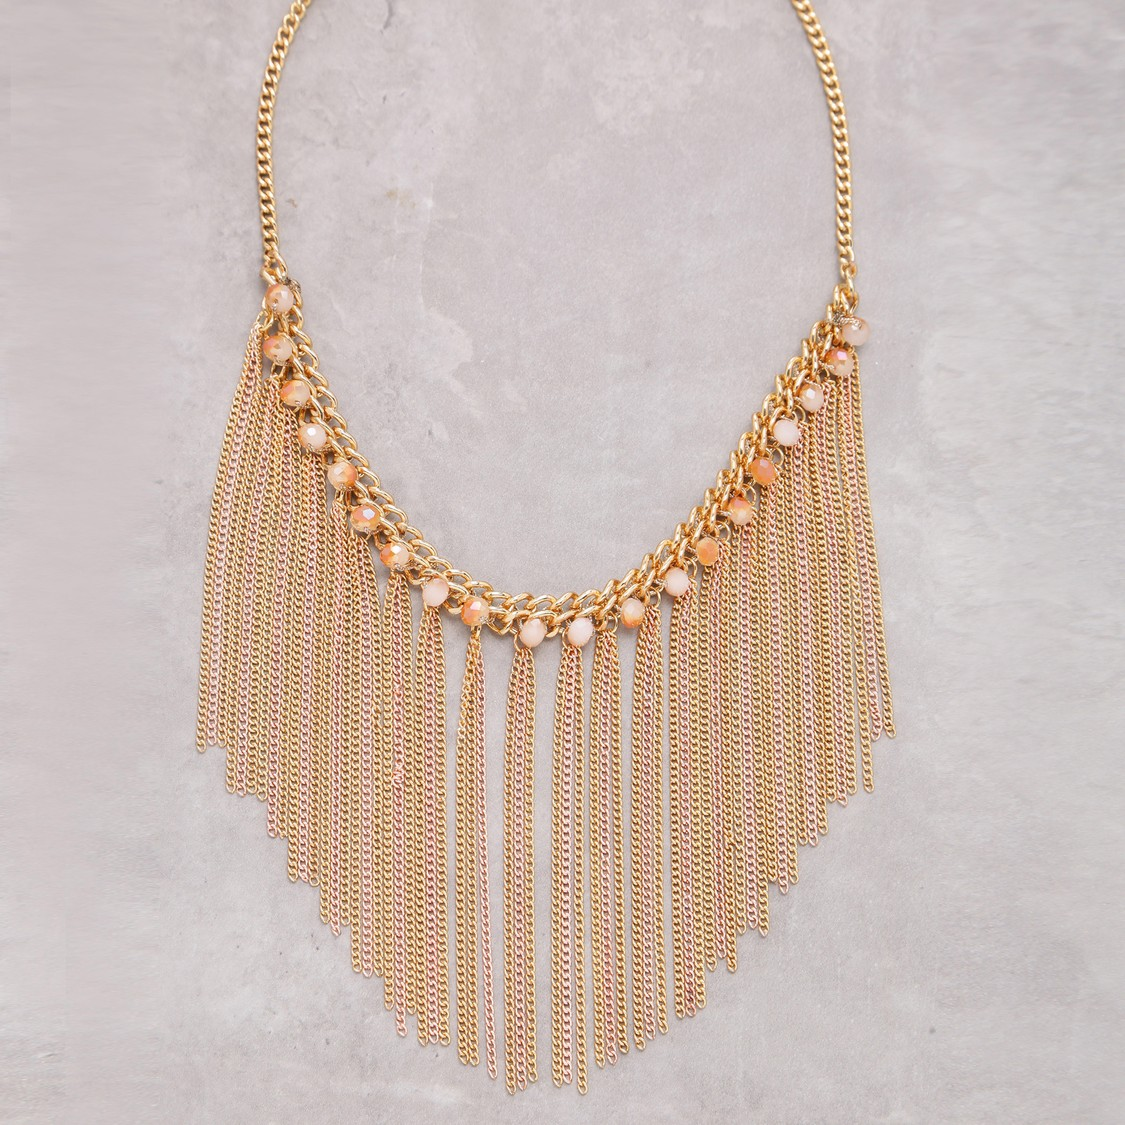 Tassel Detail Necklace with Lobster Clasp